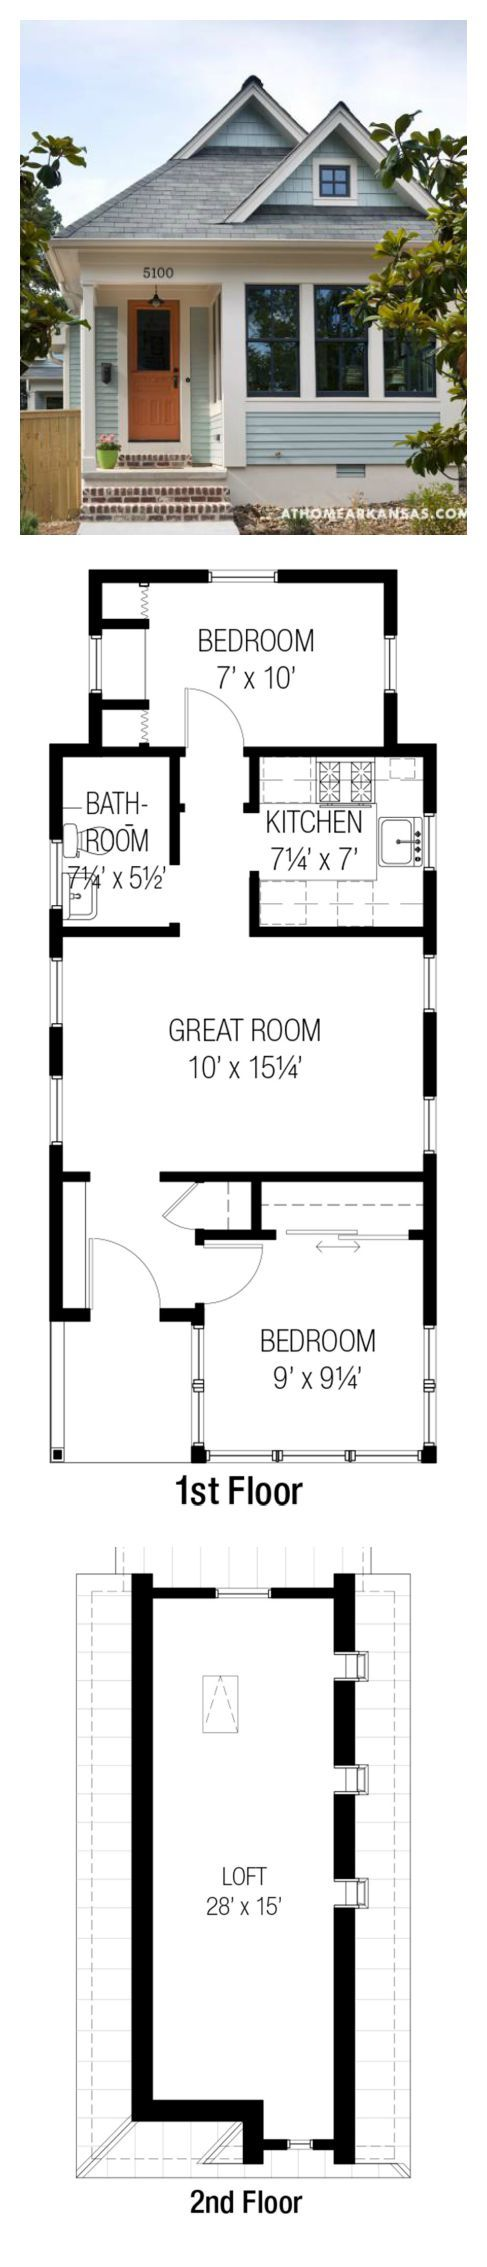 house plans on pinterest small home plans small house floor plans